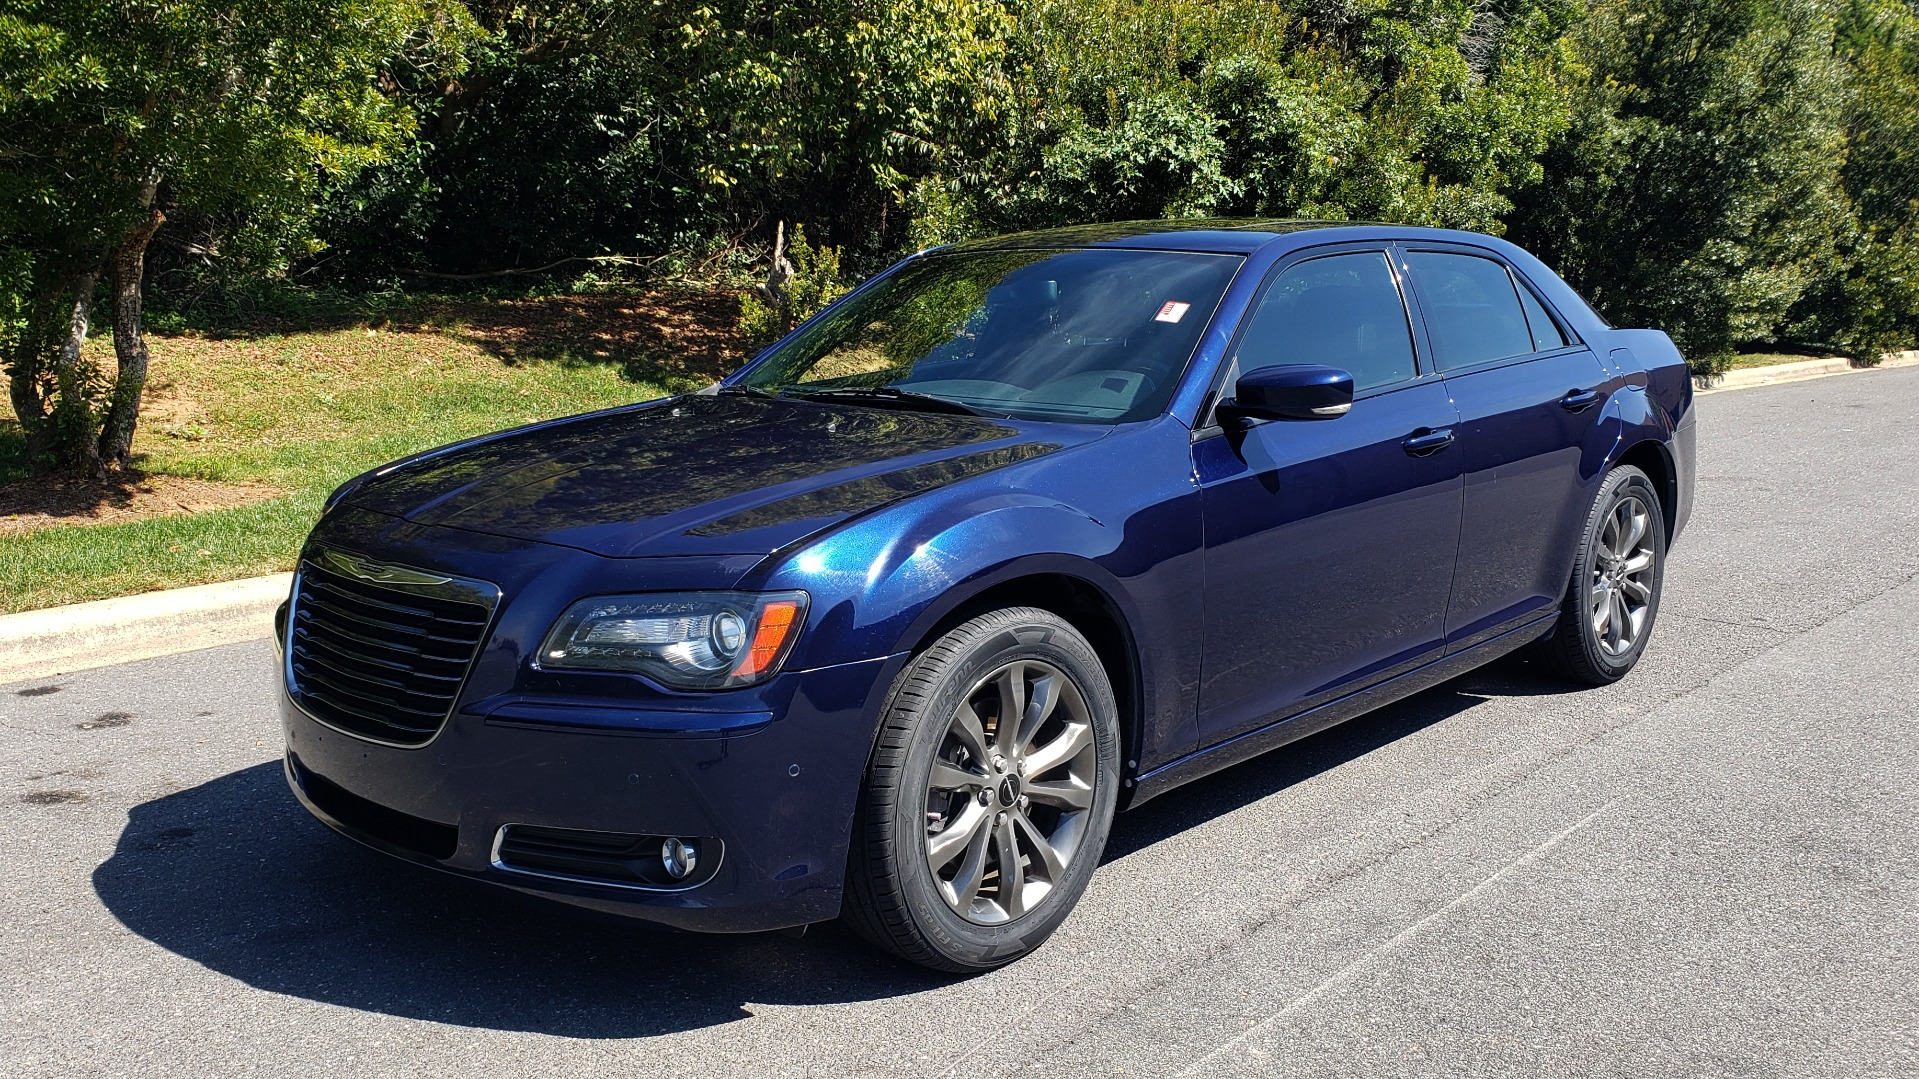 Used 2014 Chrysler 300 S AWD / SAFETY TEC / BLIND SPOT / LIGHT GRP / LUXURY GRP for sale Sold at Formula Imports in Charlotte NC 28227 3